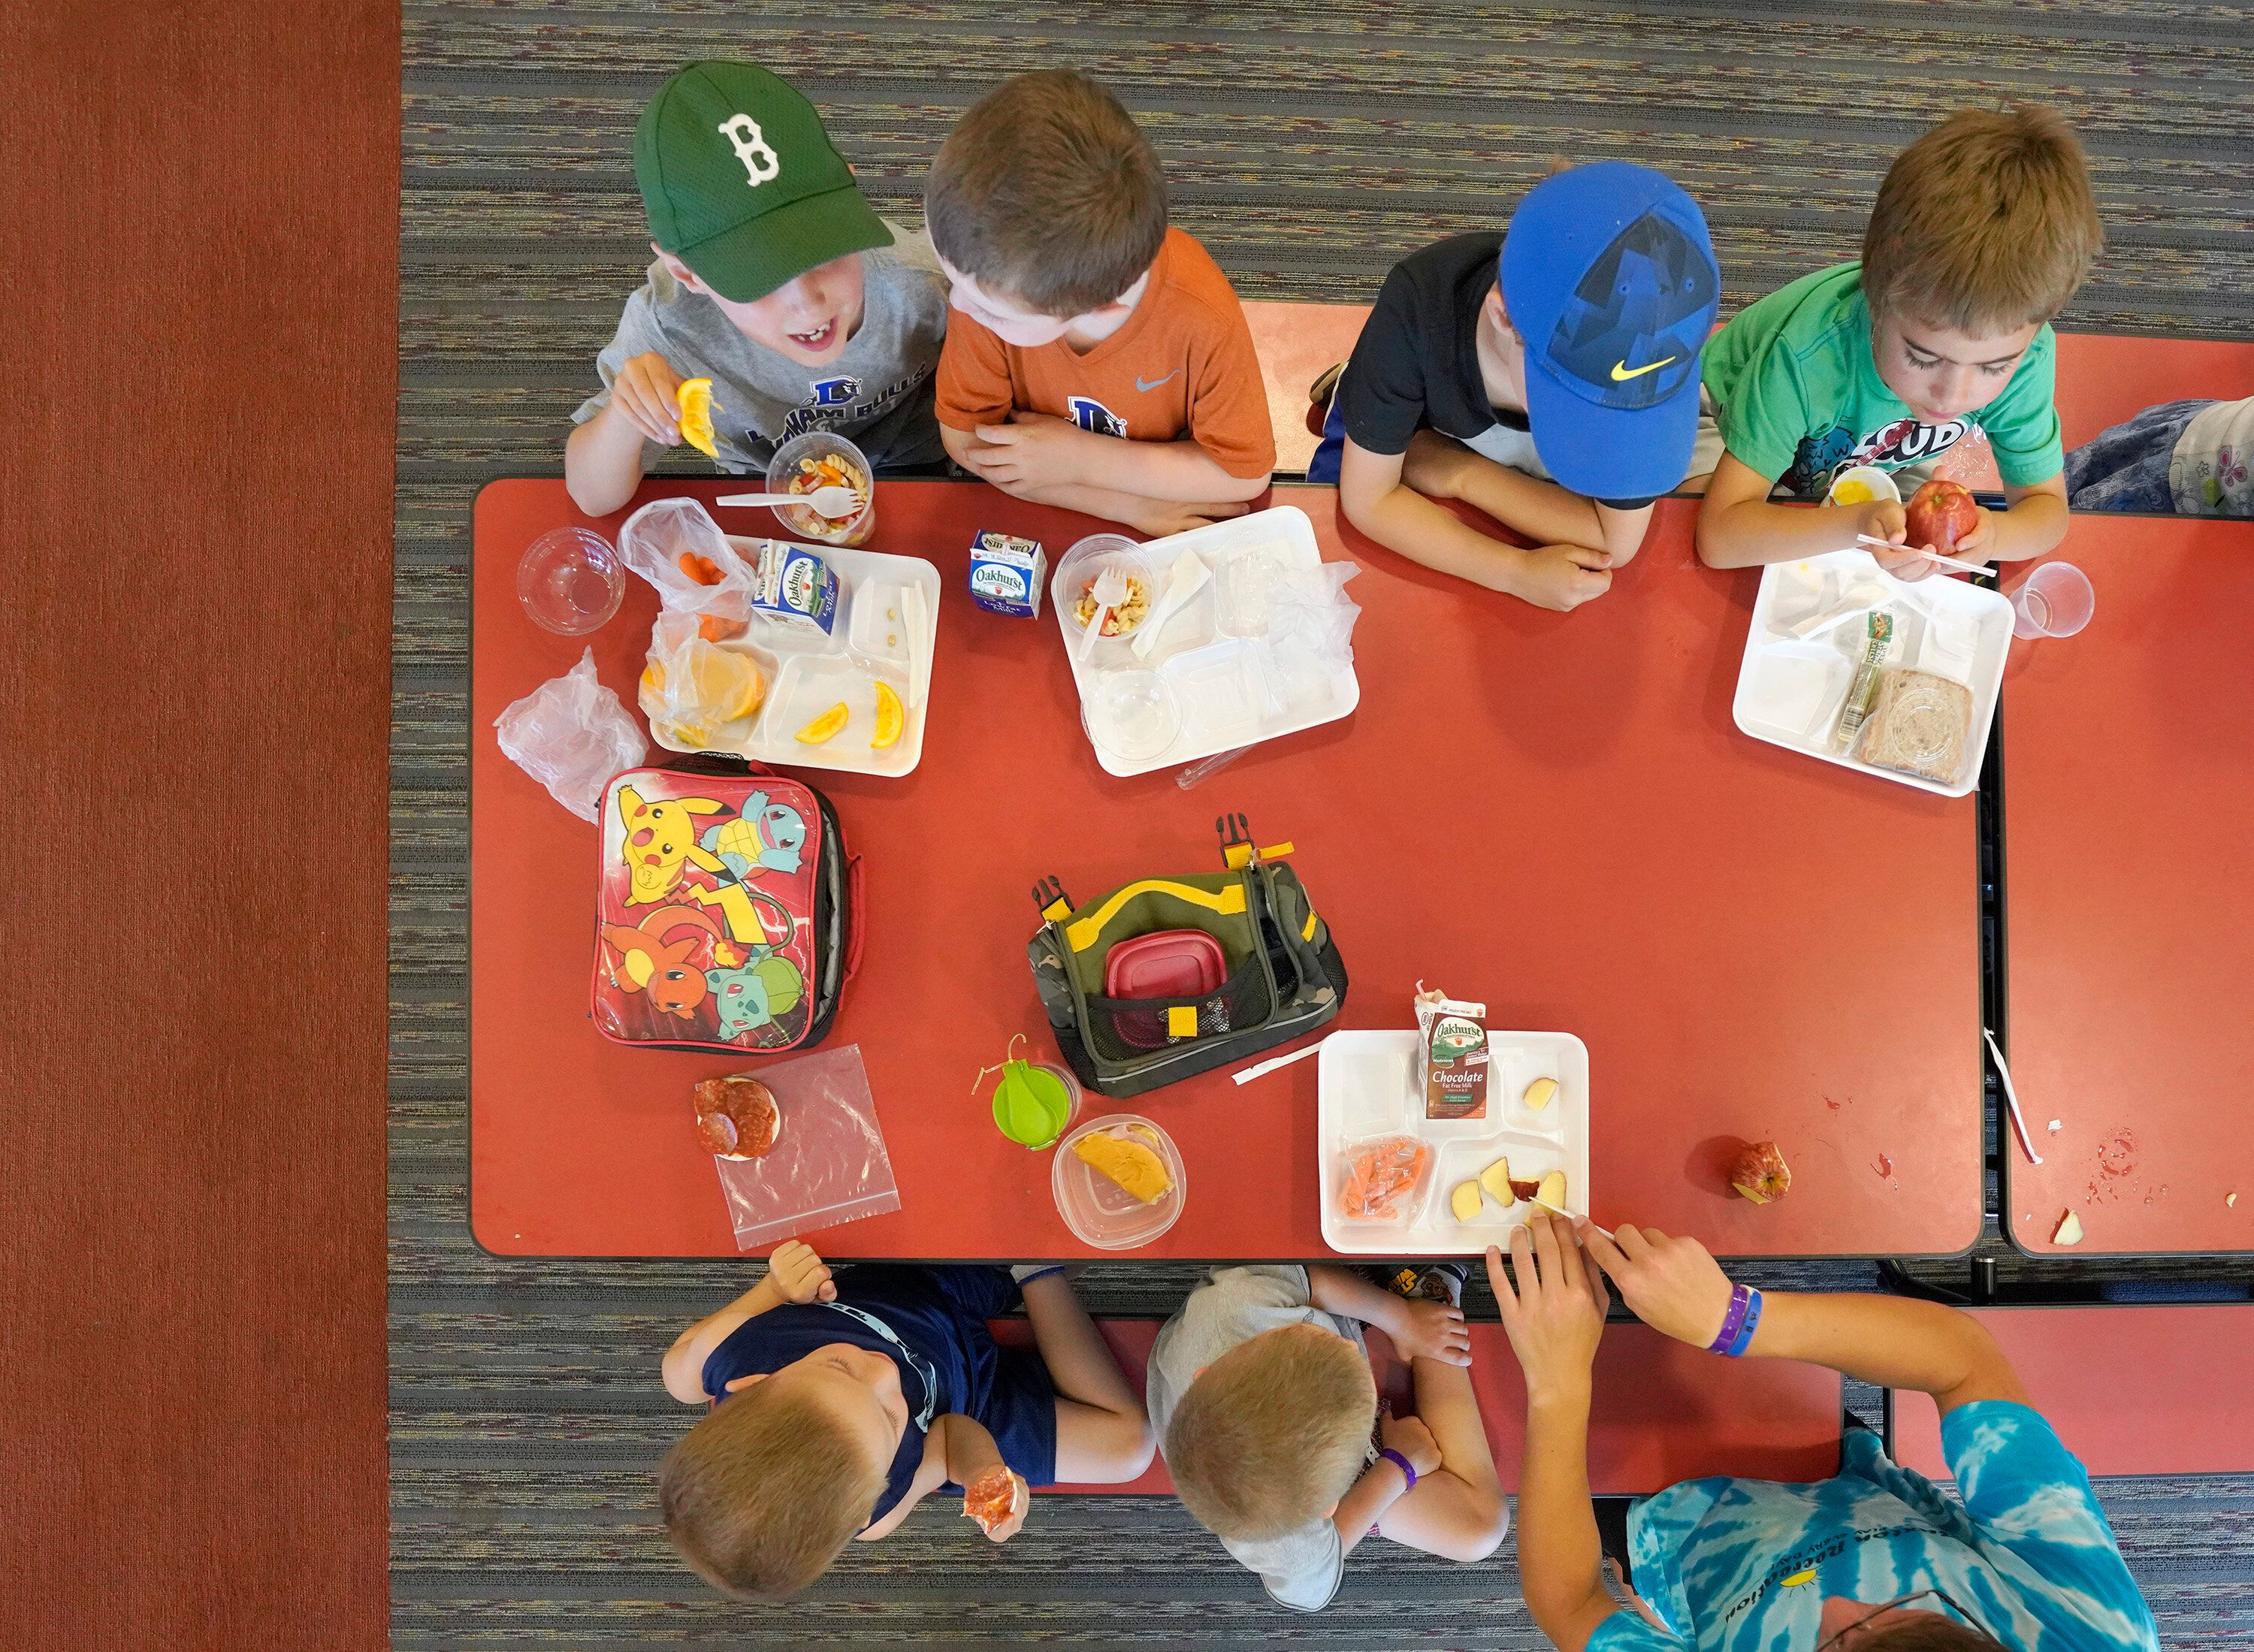 Maine Legislature OKs Bill To End 'Food Shaming' Students Who Can't Afford Meals